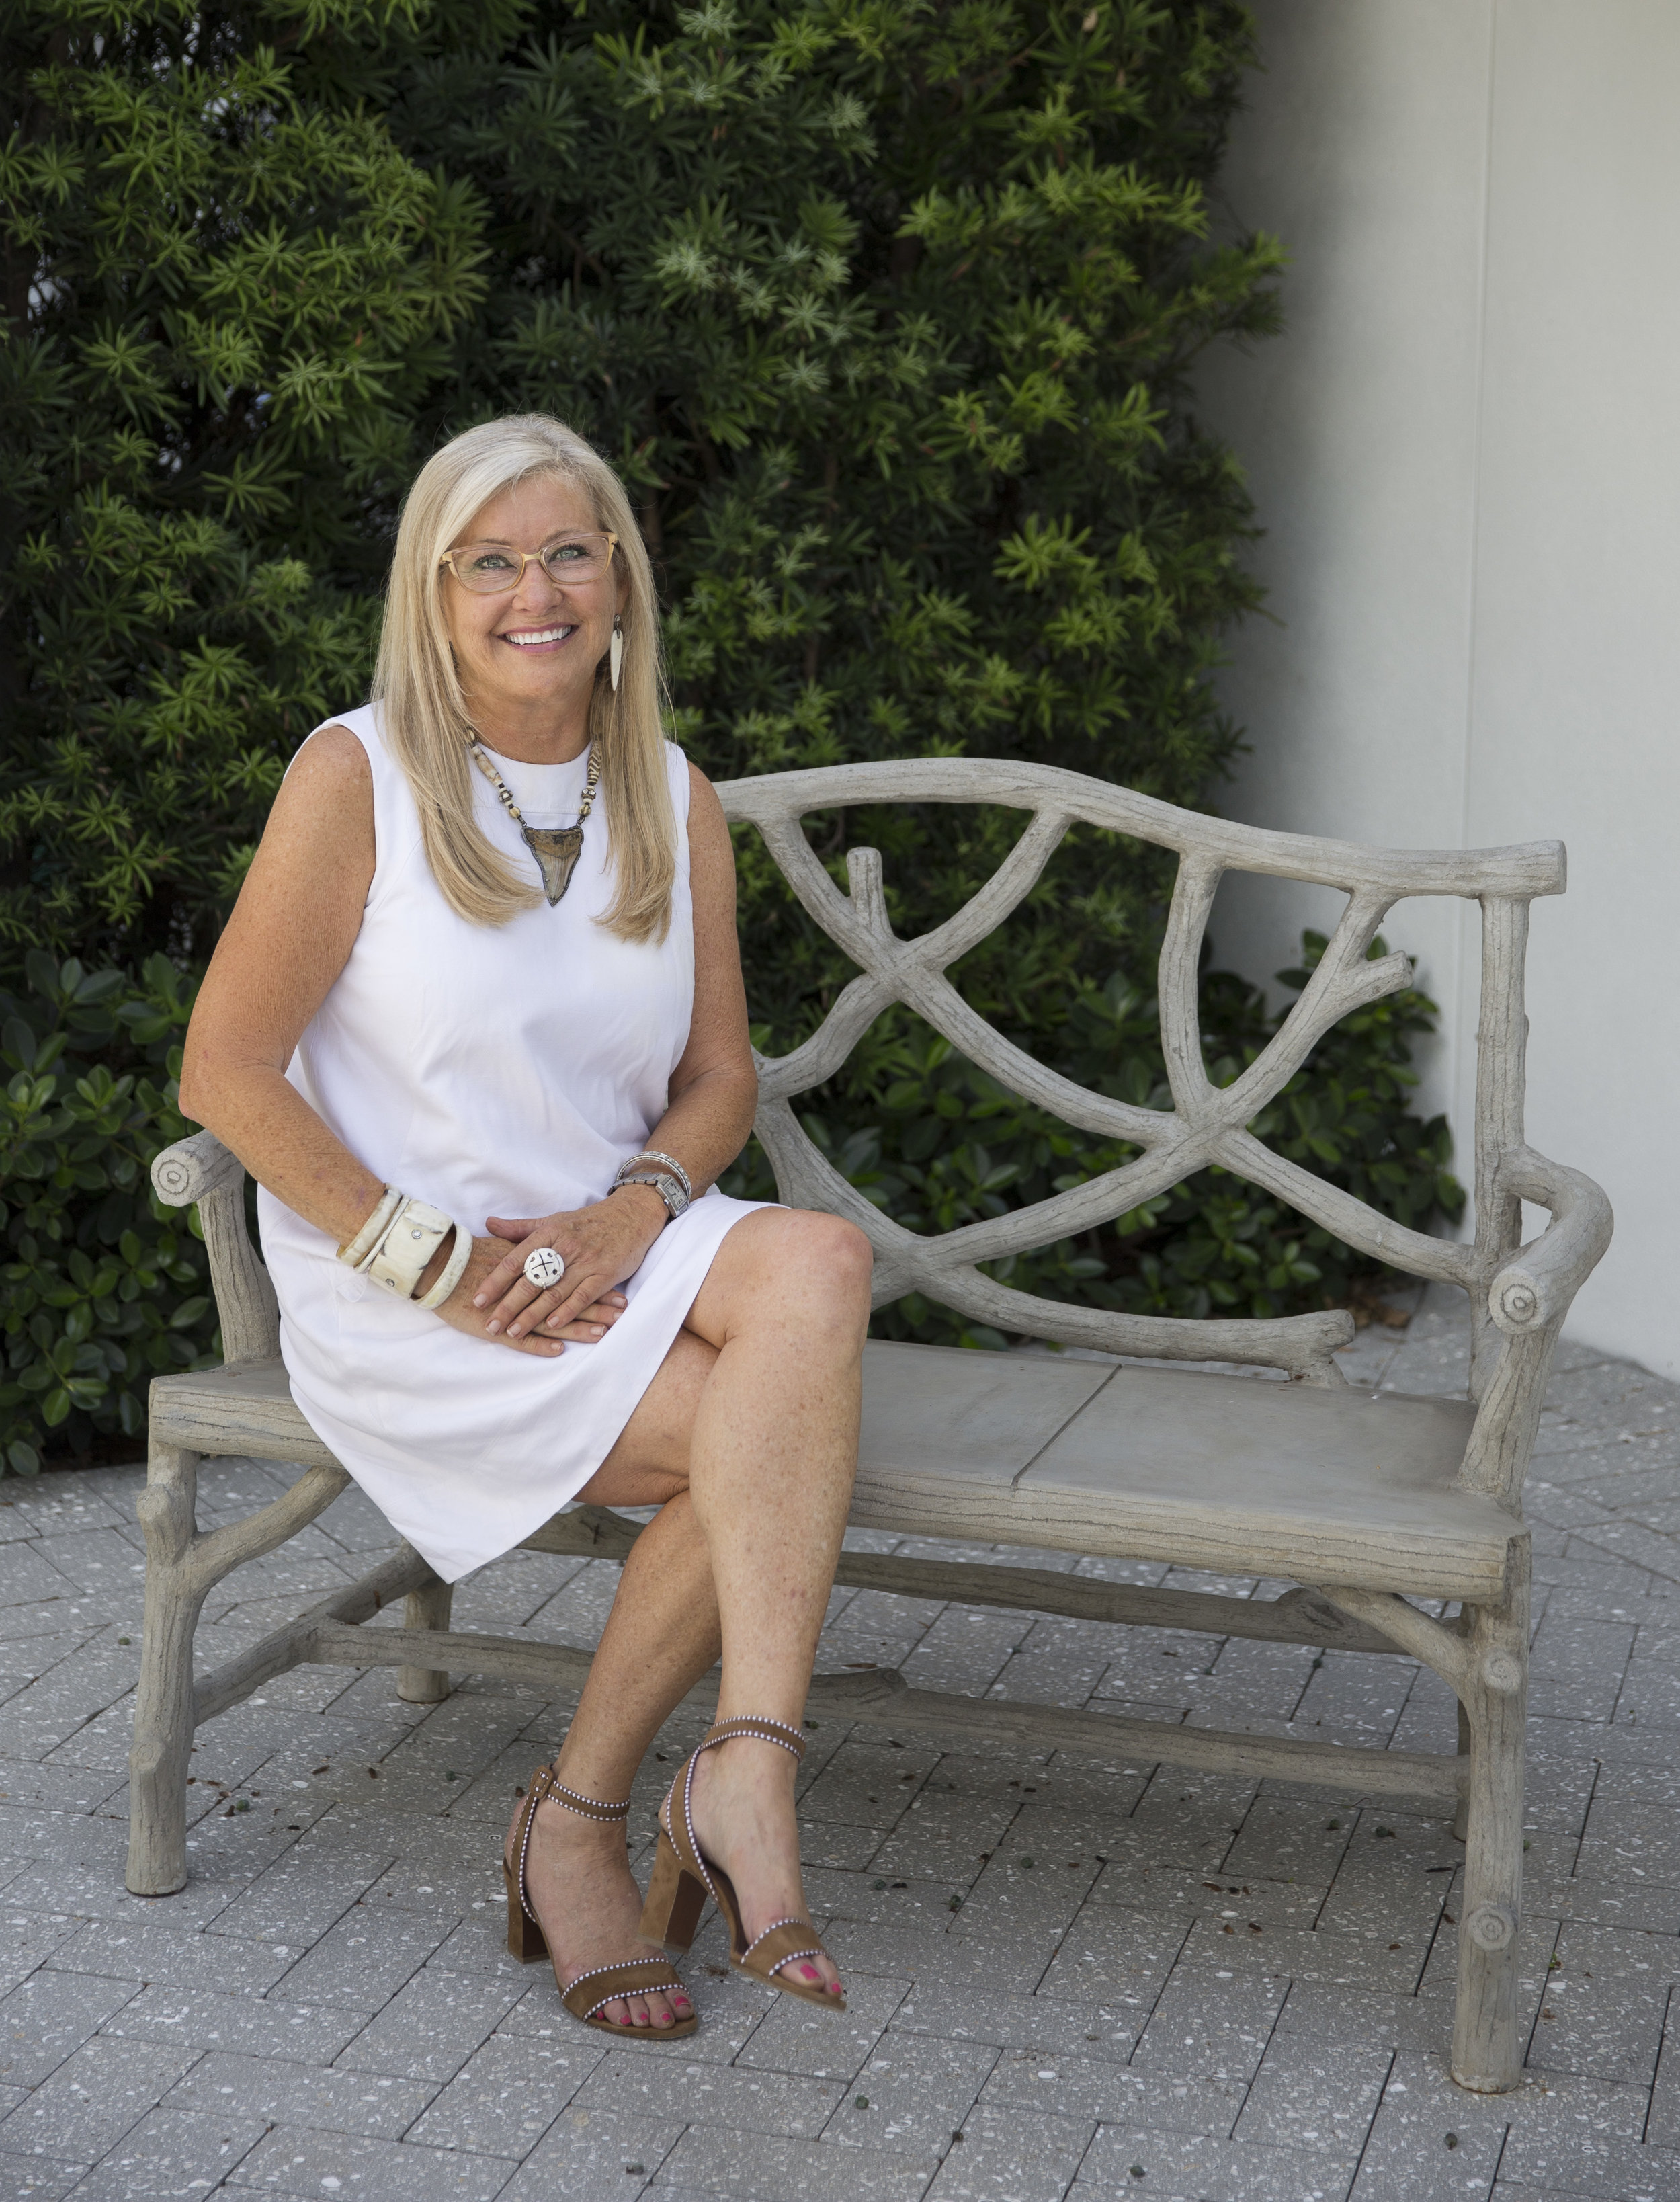 ABOUT JETT THOMPSON - OWNER & PRINCIPAL DESIGNERJett Thompson, sixth generation Floridian, earned her undergraduate degree in Fashion Merchandising from The Florida State University before beginning a twenty-five year career in the home furnishing and design industry in Atlanta, Georgia. In 2012, she came home to open Jett Thompson Antiques and Interiors in Old Naples.Following five successful years in her original location Jett moved her business one block north, doubling the retail space, renamed Jett Thompson HOME, and creating a separate interior design studio. The two buildings surround a private courtyard utilized for speakers, book signings and community events.Jett has accessorized rooms for Ralph Lauren Home and her previous boutique openings include Atlanta, St. Simons Island, and Englewood, FL before bringing her talents to Naples. A few of her nationally recognized interior projects include a luxury Bed and Breakfast in Colorado, a Ritz Carlton residence in Sarasota, along with private luxury homes in SW Florida, Palm Beach and New York.With her unique design aesthetic, Jett's work is celebrated for juxtaposing the organic with the refined, all with a twist of the unexpected.